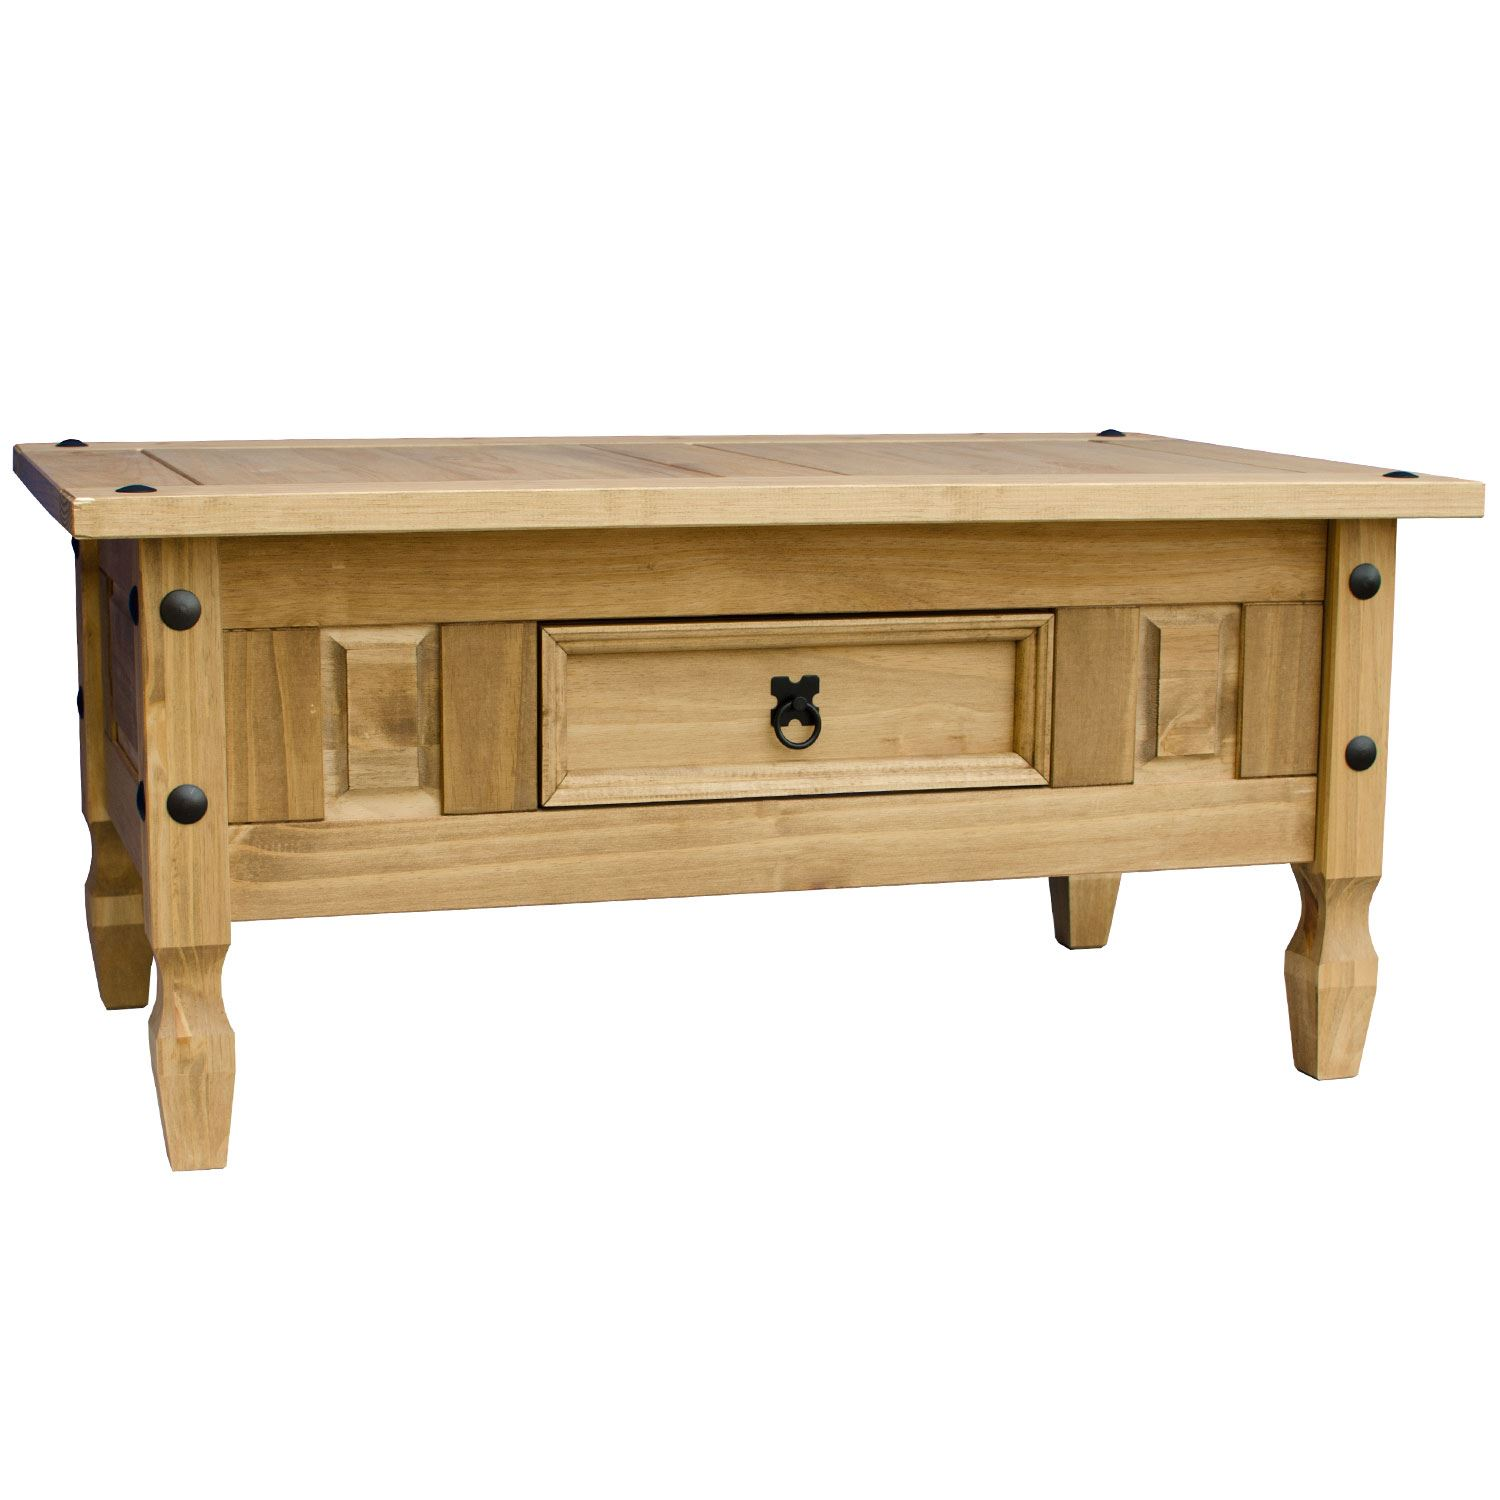 Corona coffee table 1 drawer mexican solid waxed pine rustic living furniture ebay Pine coffee table with drawers